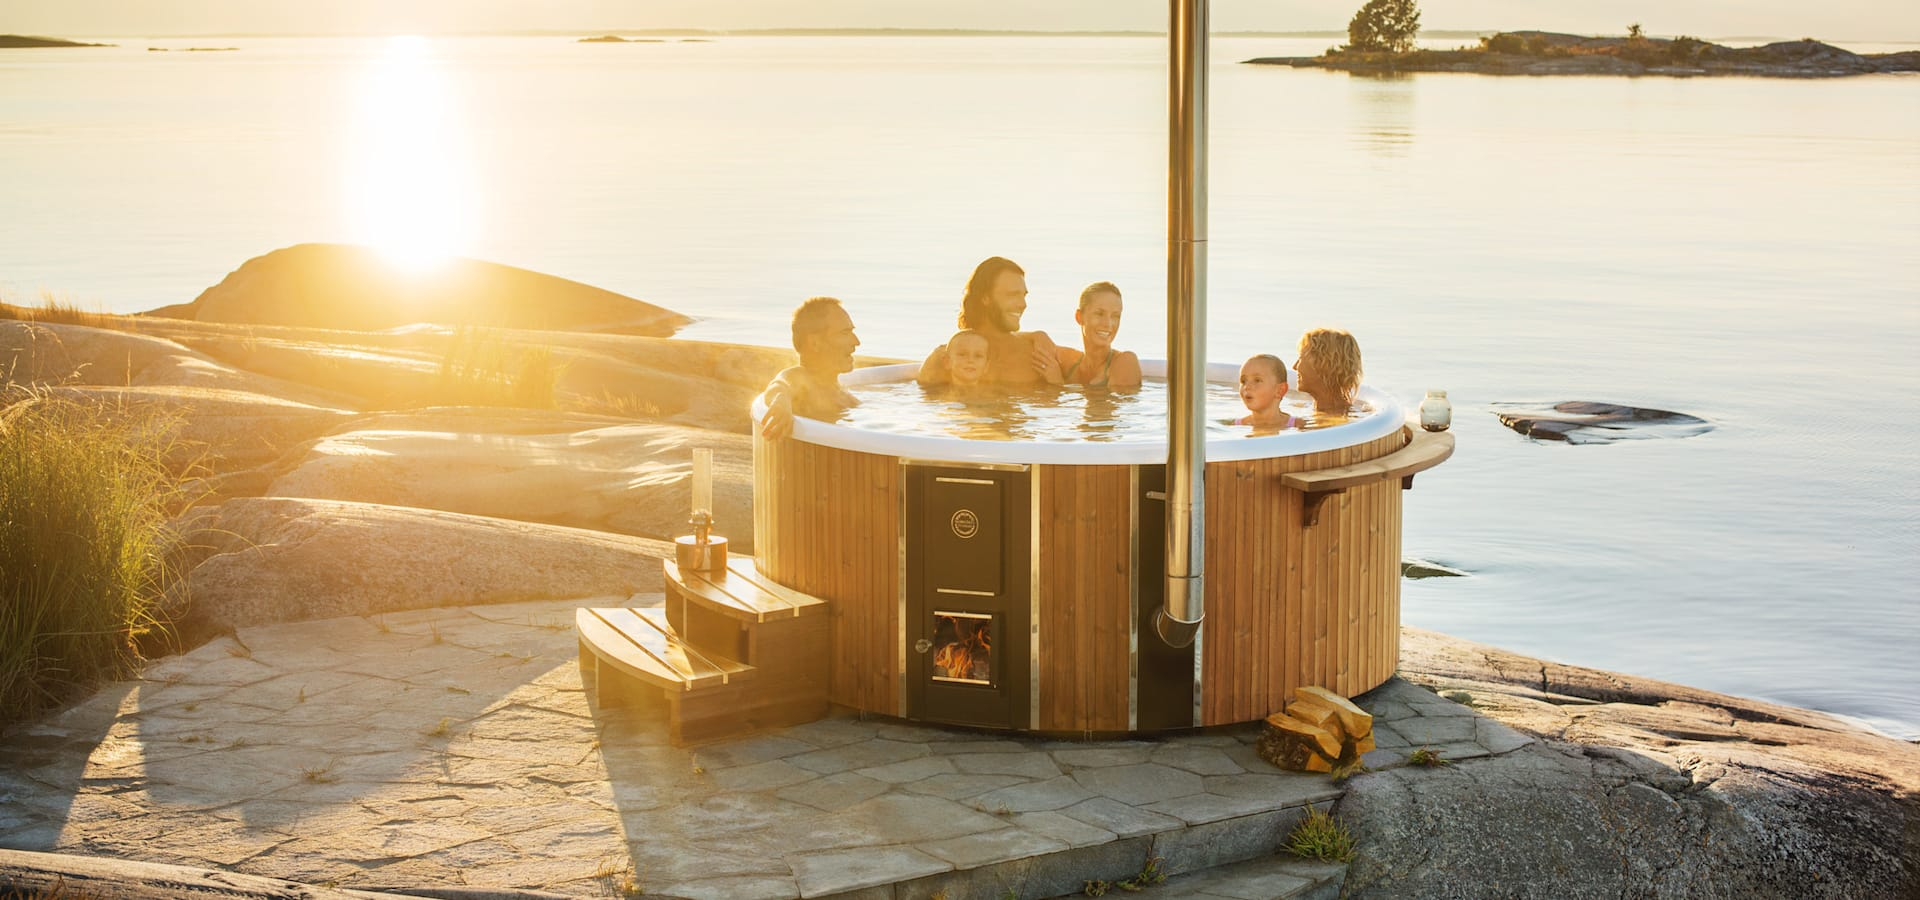 Skargards Hot Tubs NL